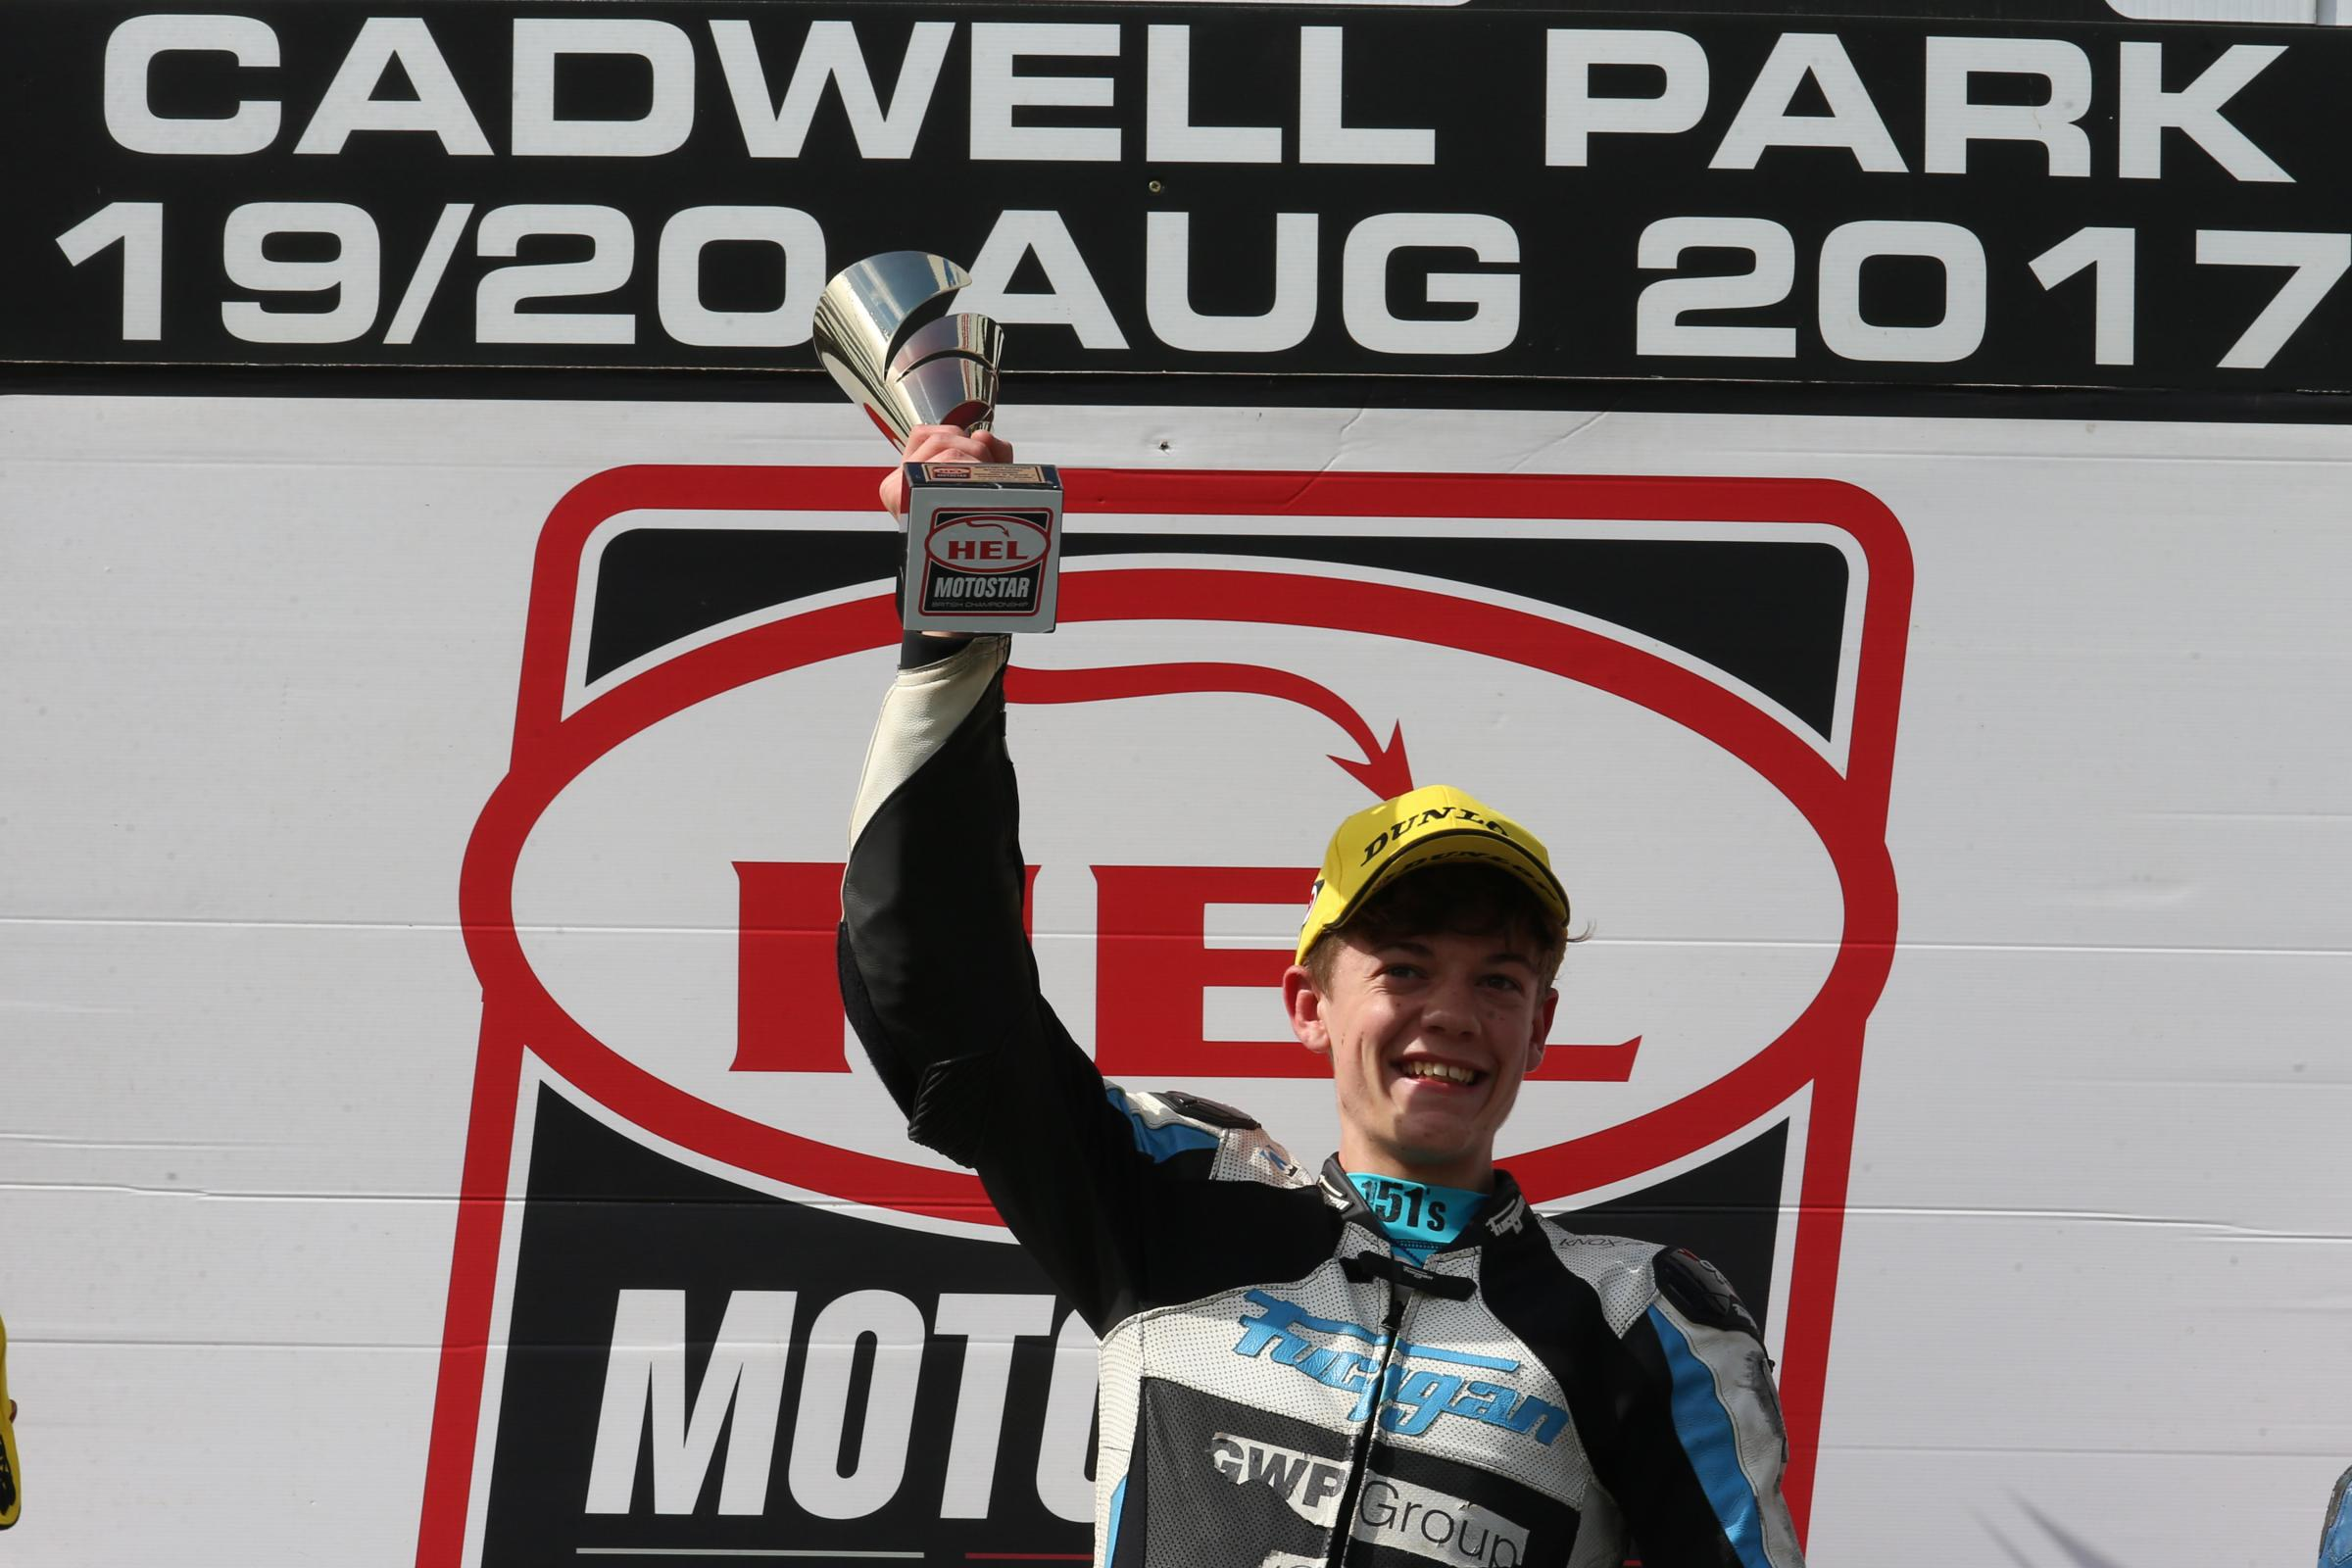 N Max Cook celebrates at Cadwell Park. PICTURE: BONNIE LANE